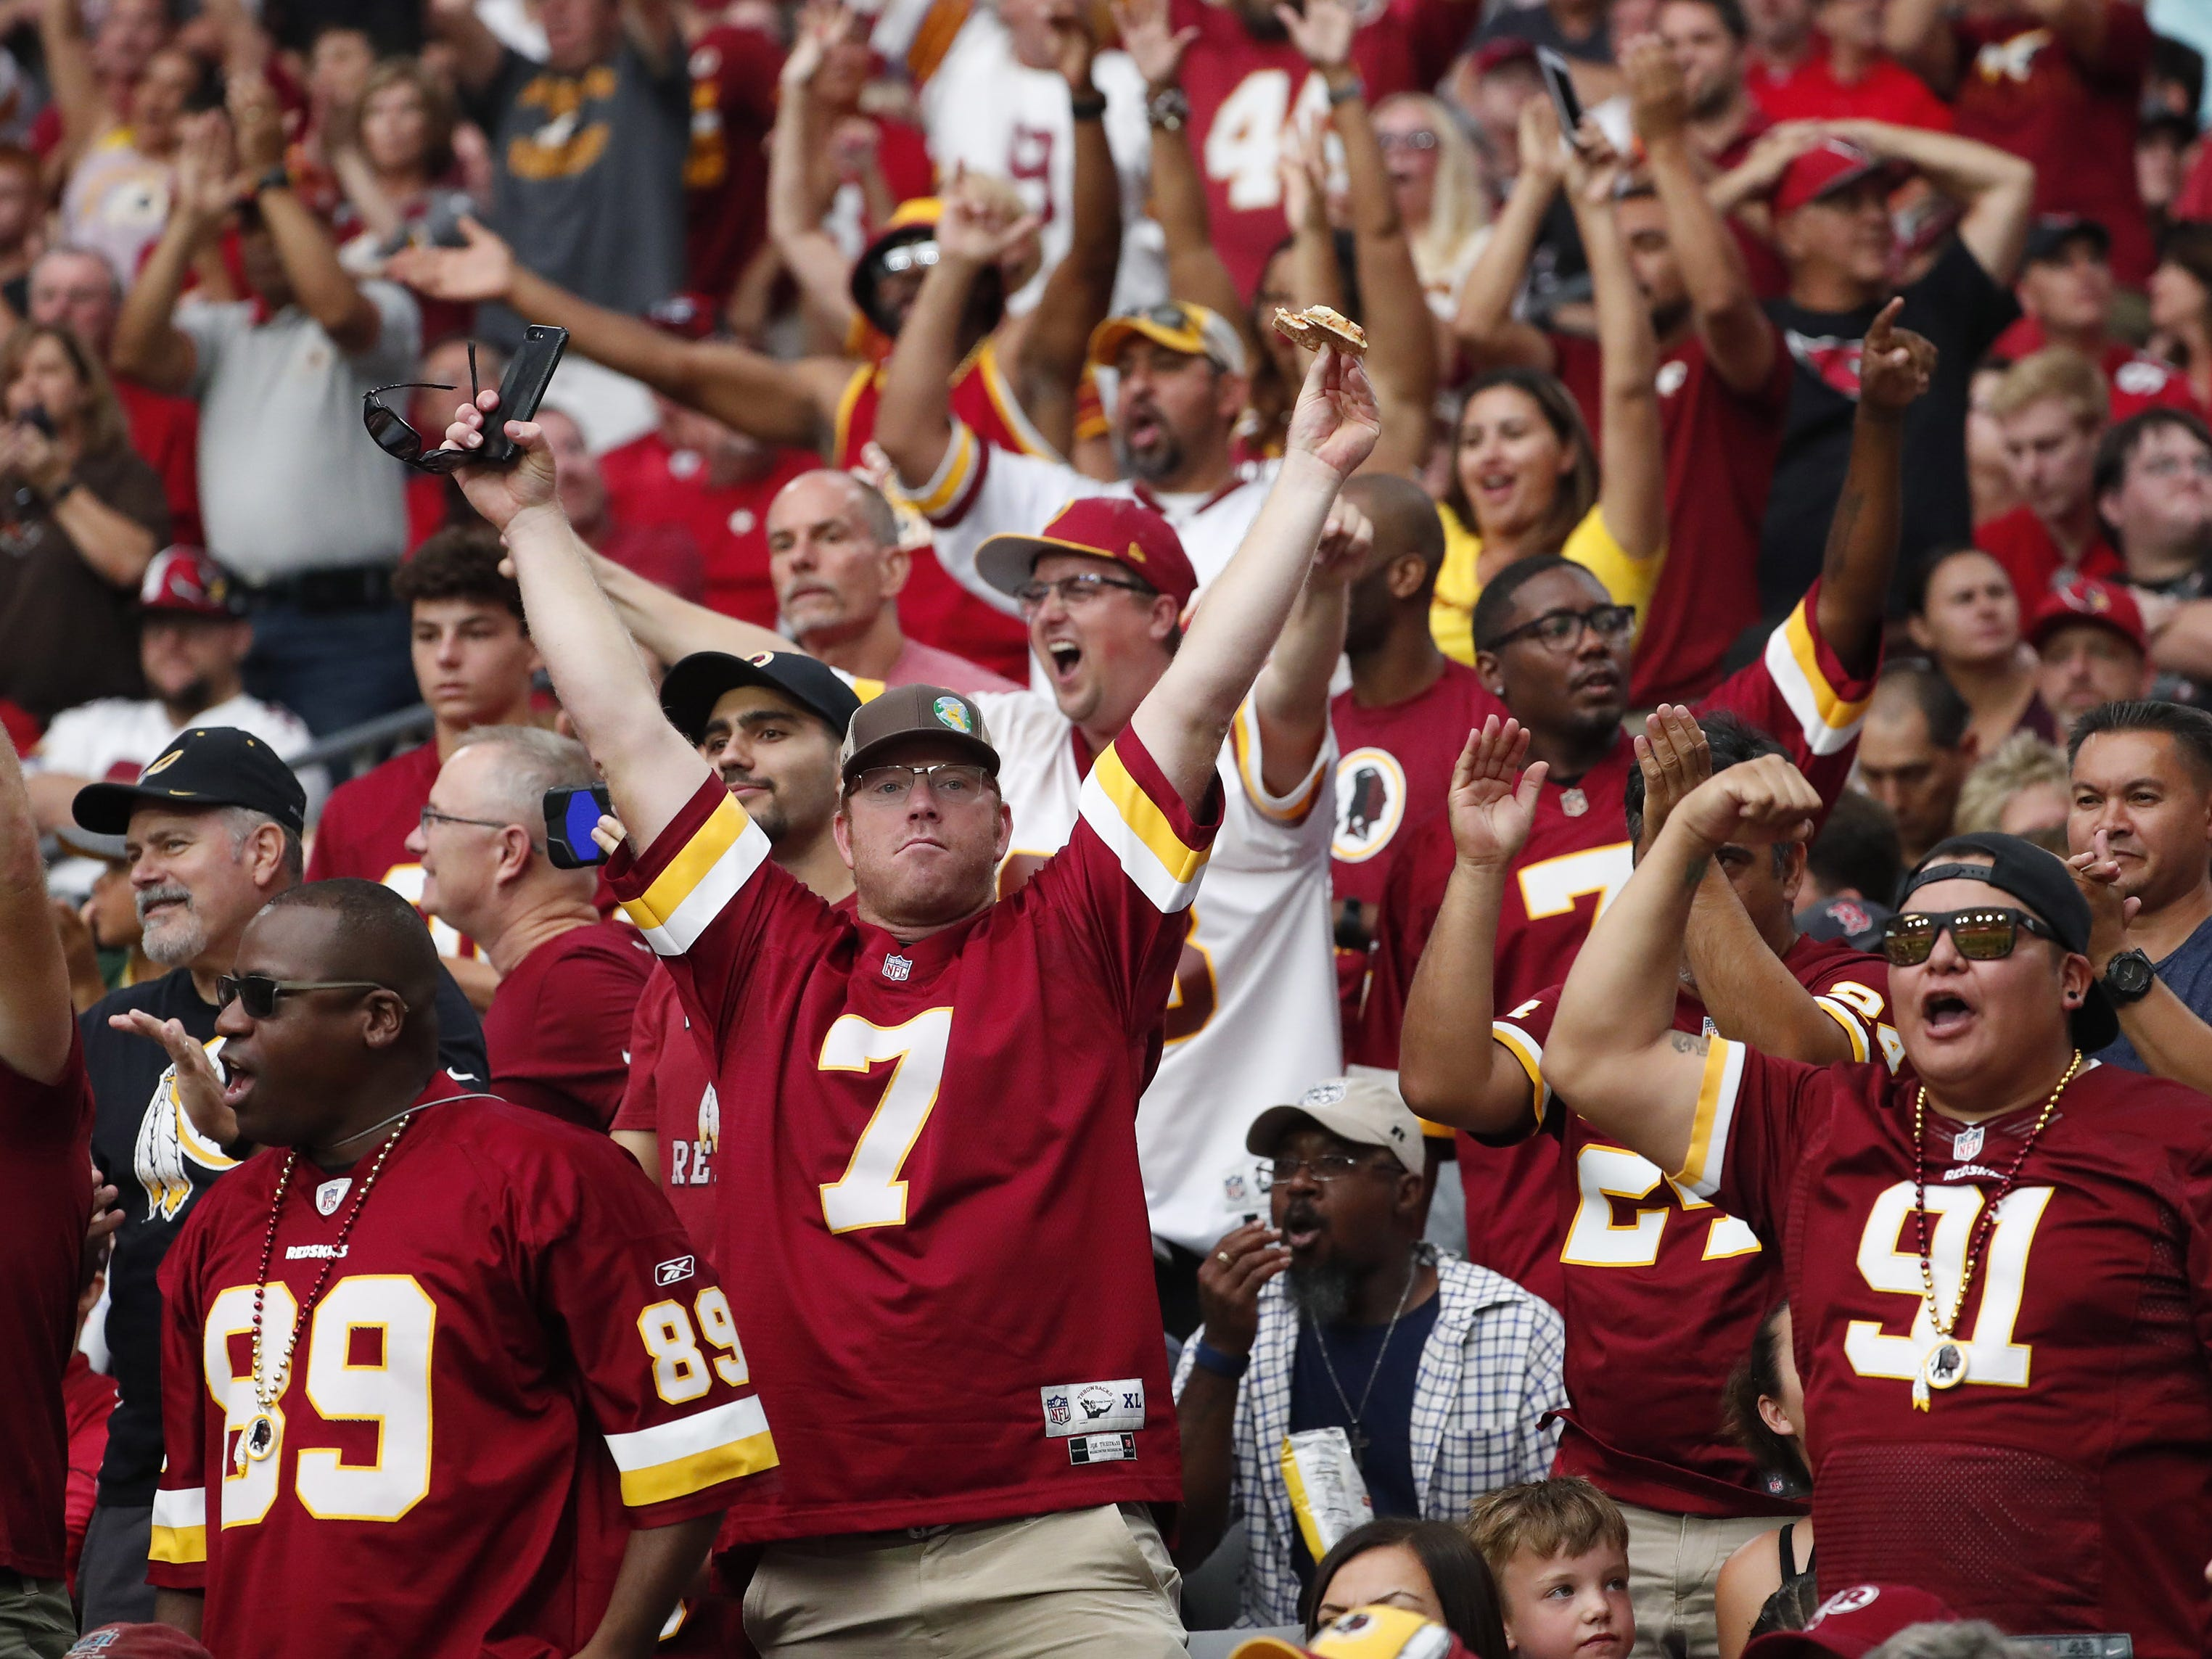 Washington Redskins fans cheer during the second quarter against the Arizona Cardinals at State Farm Stadium in Glendale, Ariz. September 9. 2018.